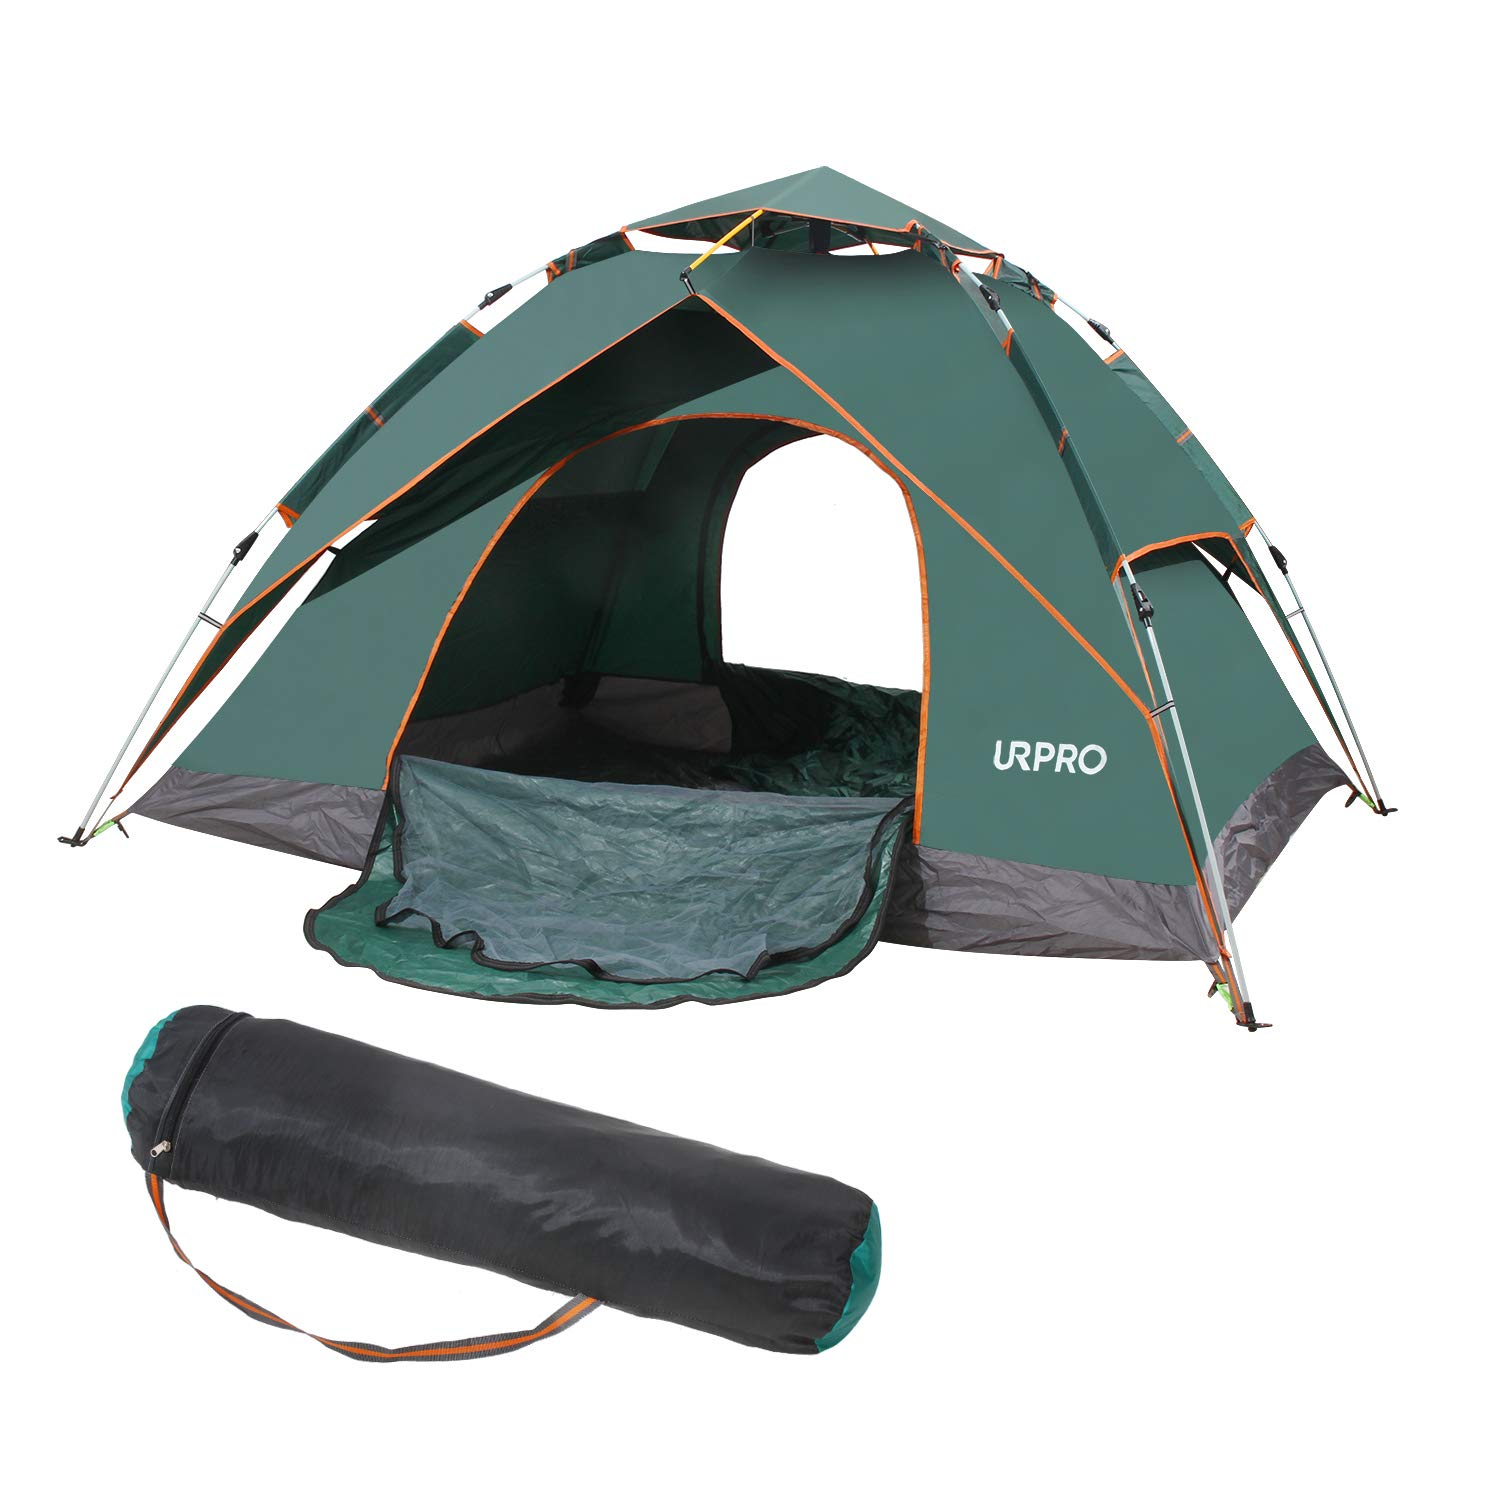 URPRO 2-4 Person Tent for C&ing 4 Season Lightweight Waterproof Instant Family ...  sc 1 st  Outdoor Reviews & URPRO 2-4 Person Tent for Camping 4 Season Lightweight Waterproof ...